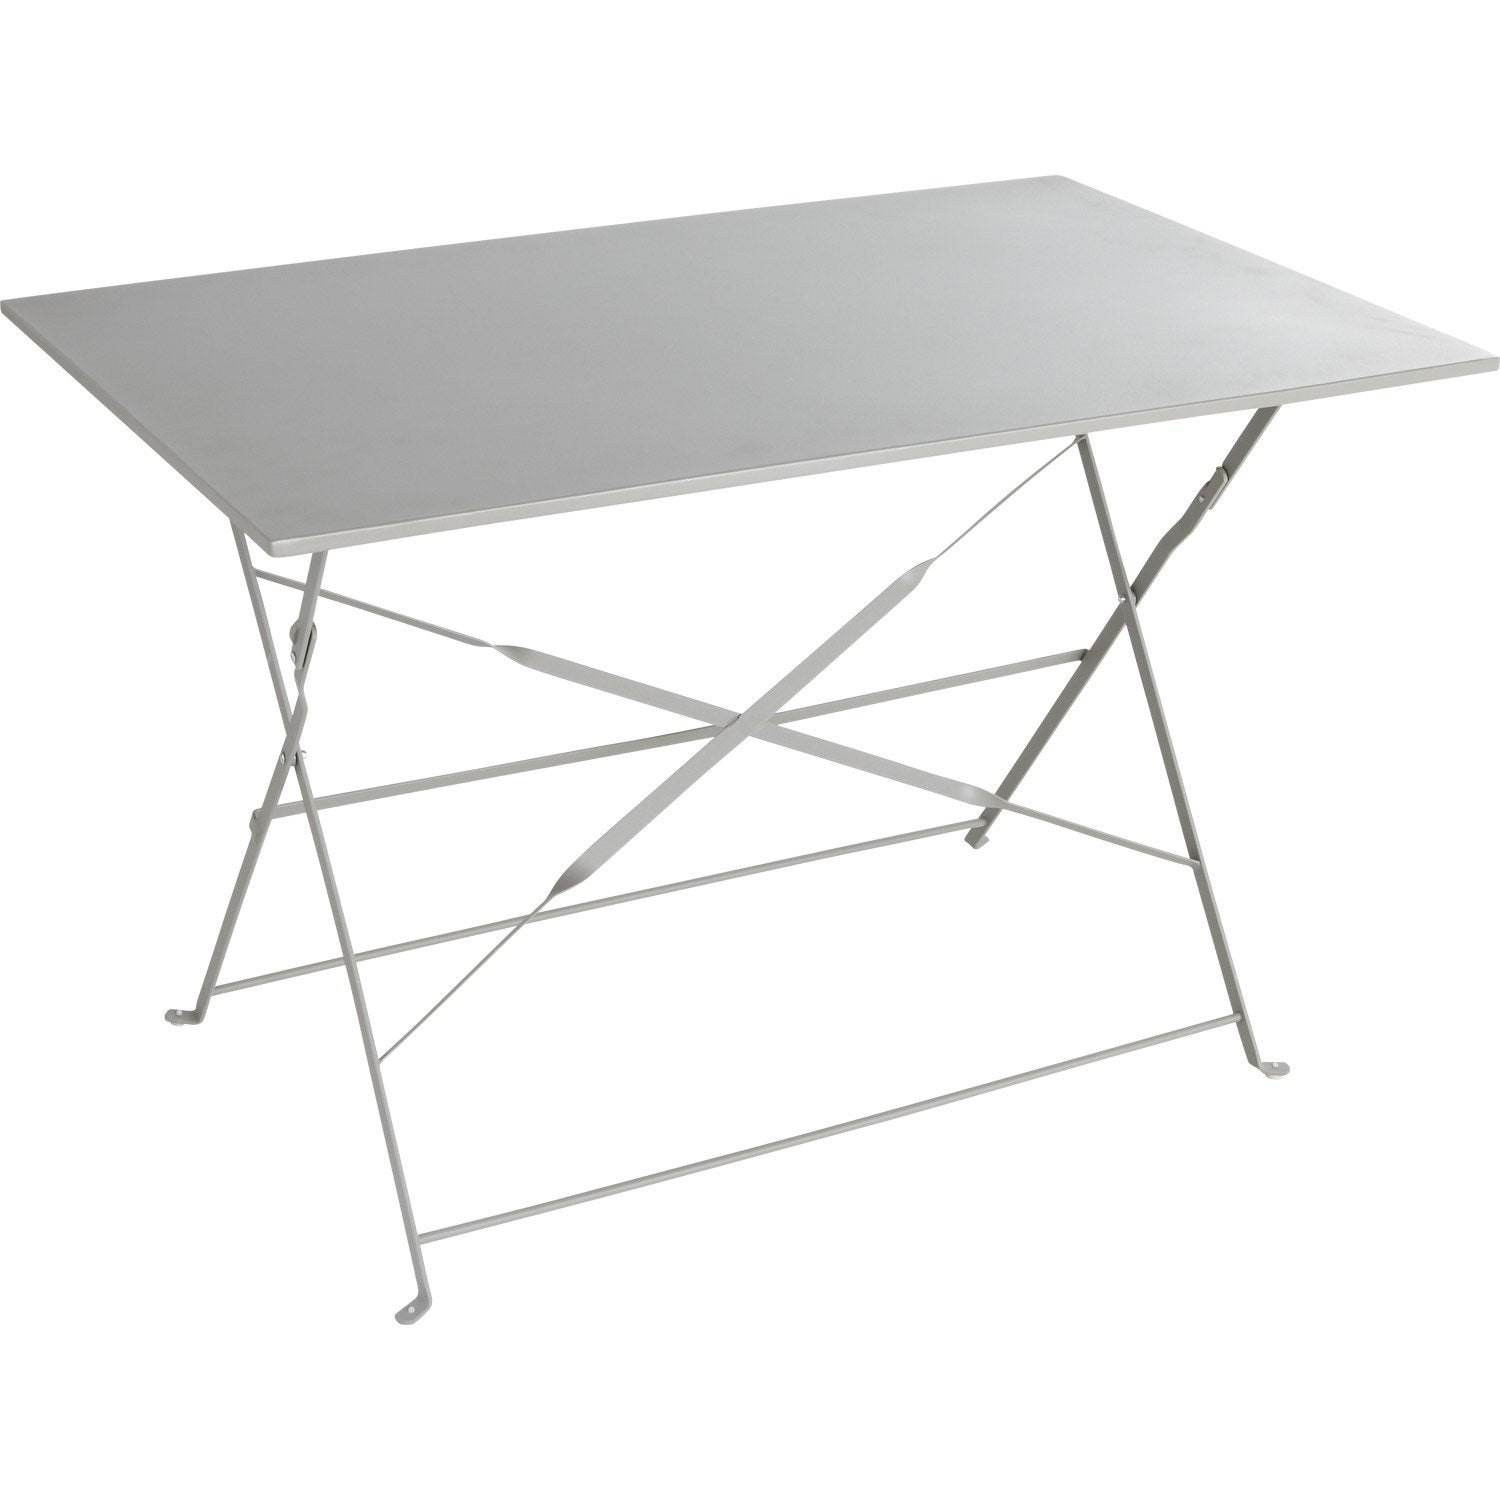 Table de jardin naterial flore rectangulaire gris 4 for Table de nuit leroy merlin